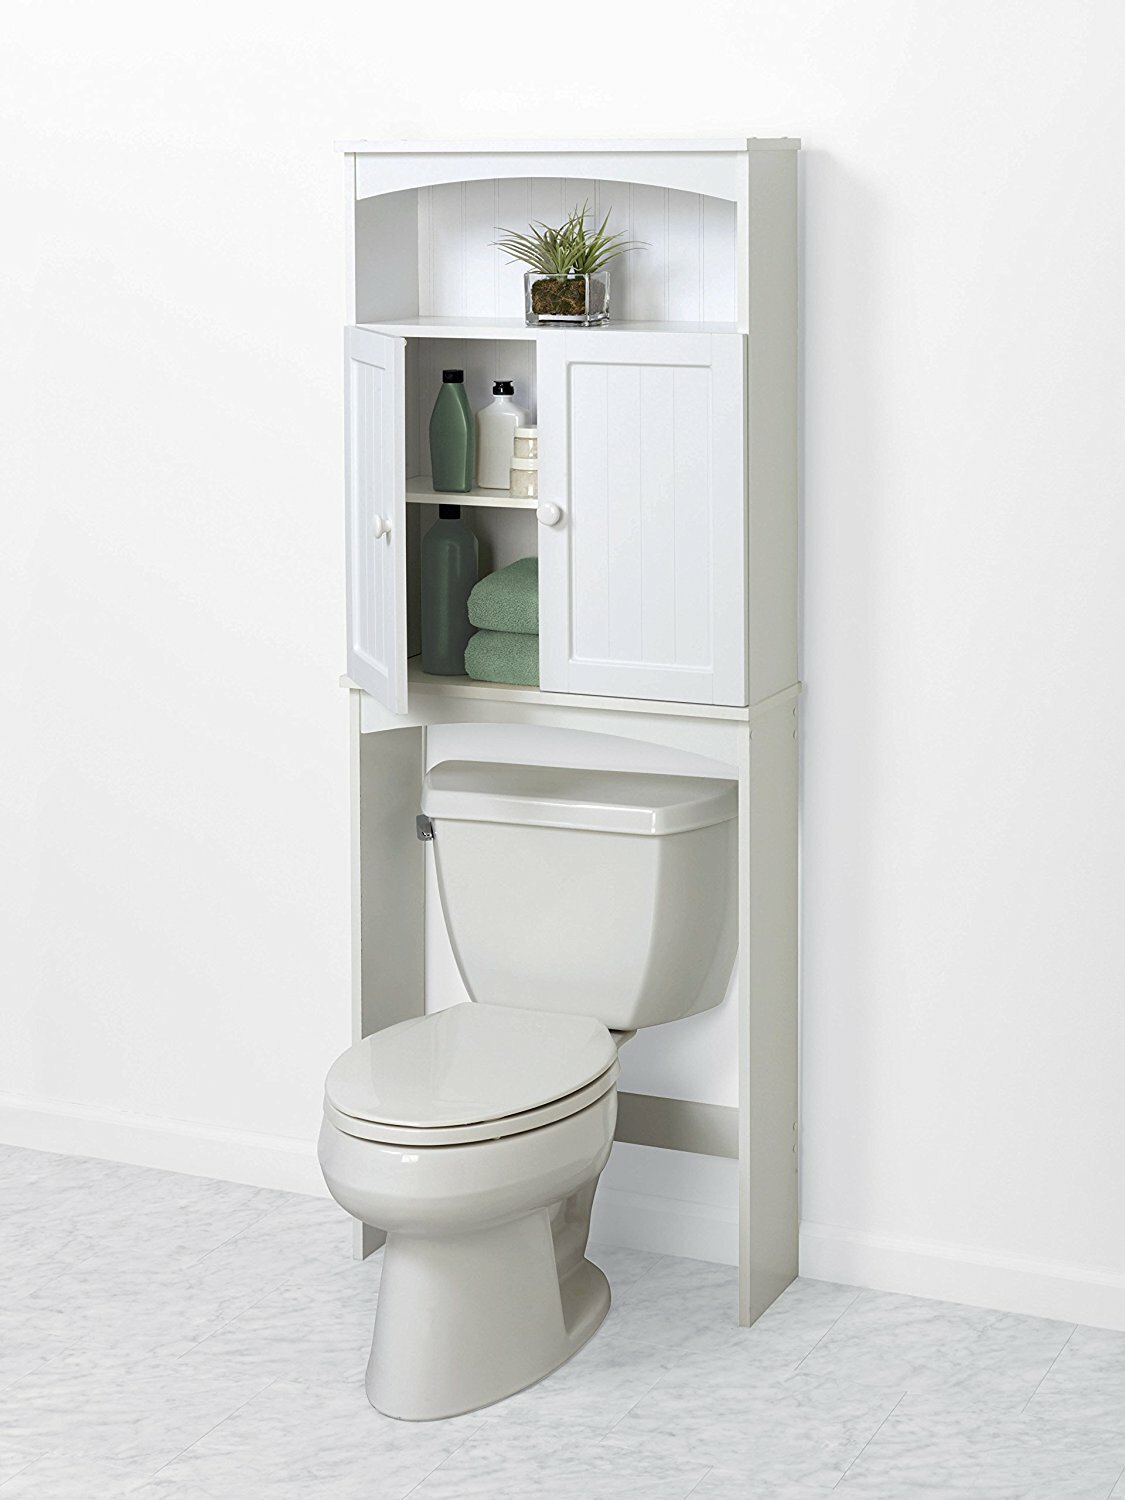 Space Saver Cabinets Kitchen Bathroom Metal Etagere Bathroom Toilet Etagere Space